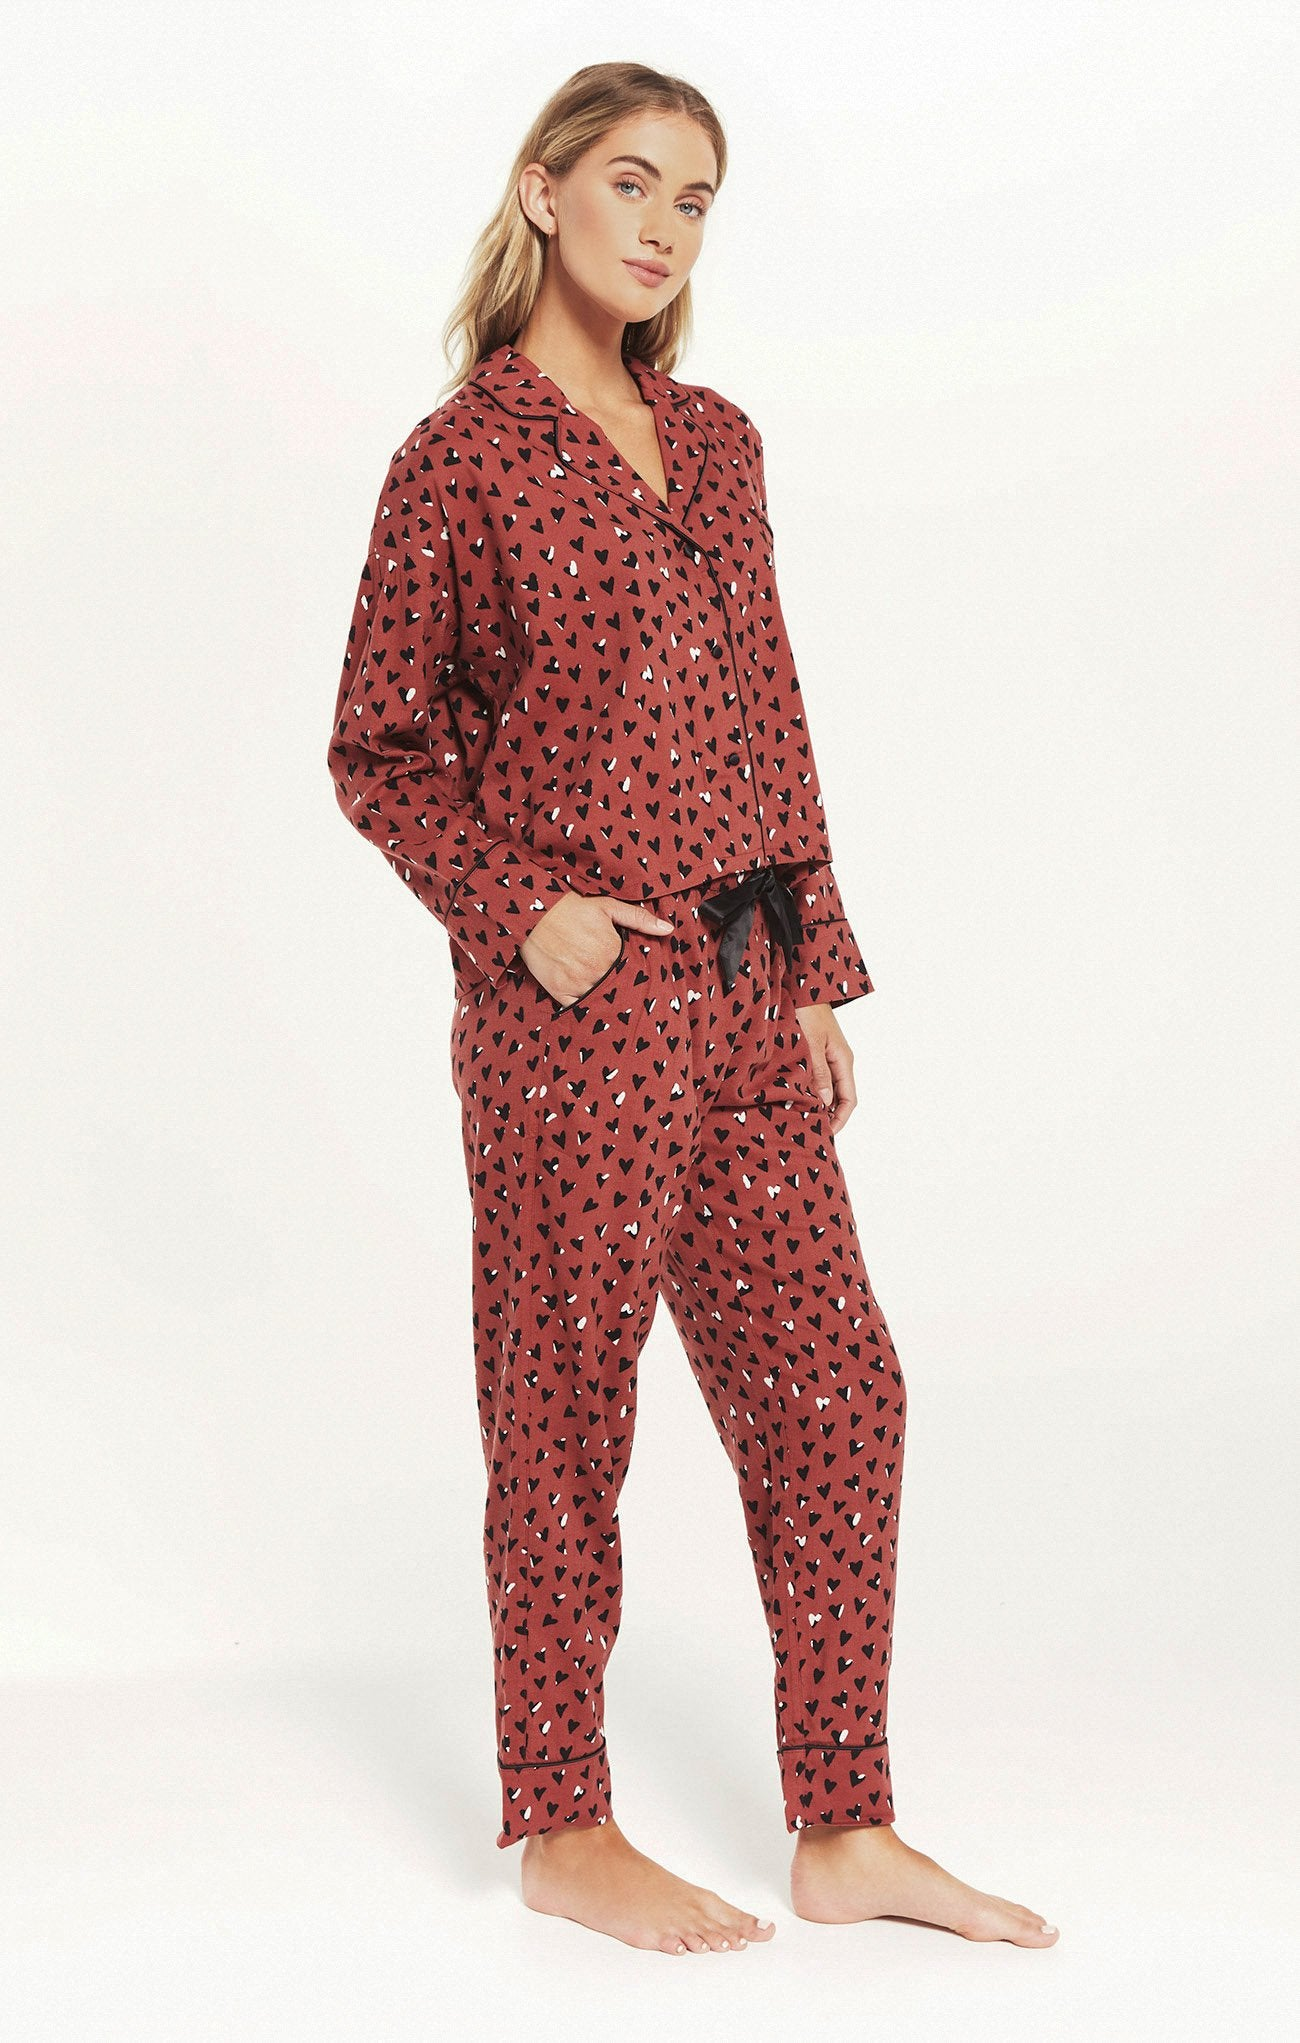 Dream State Heart PJ Set in Rosy Red